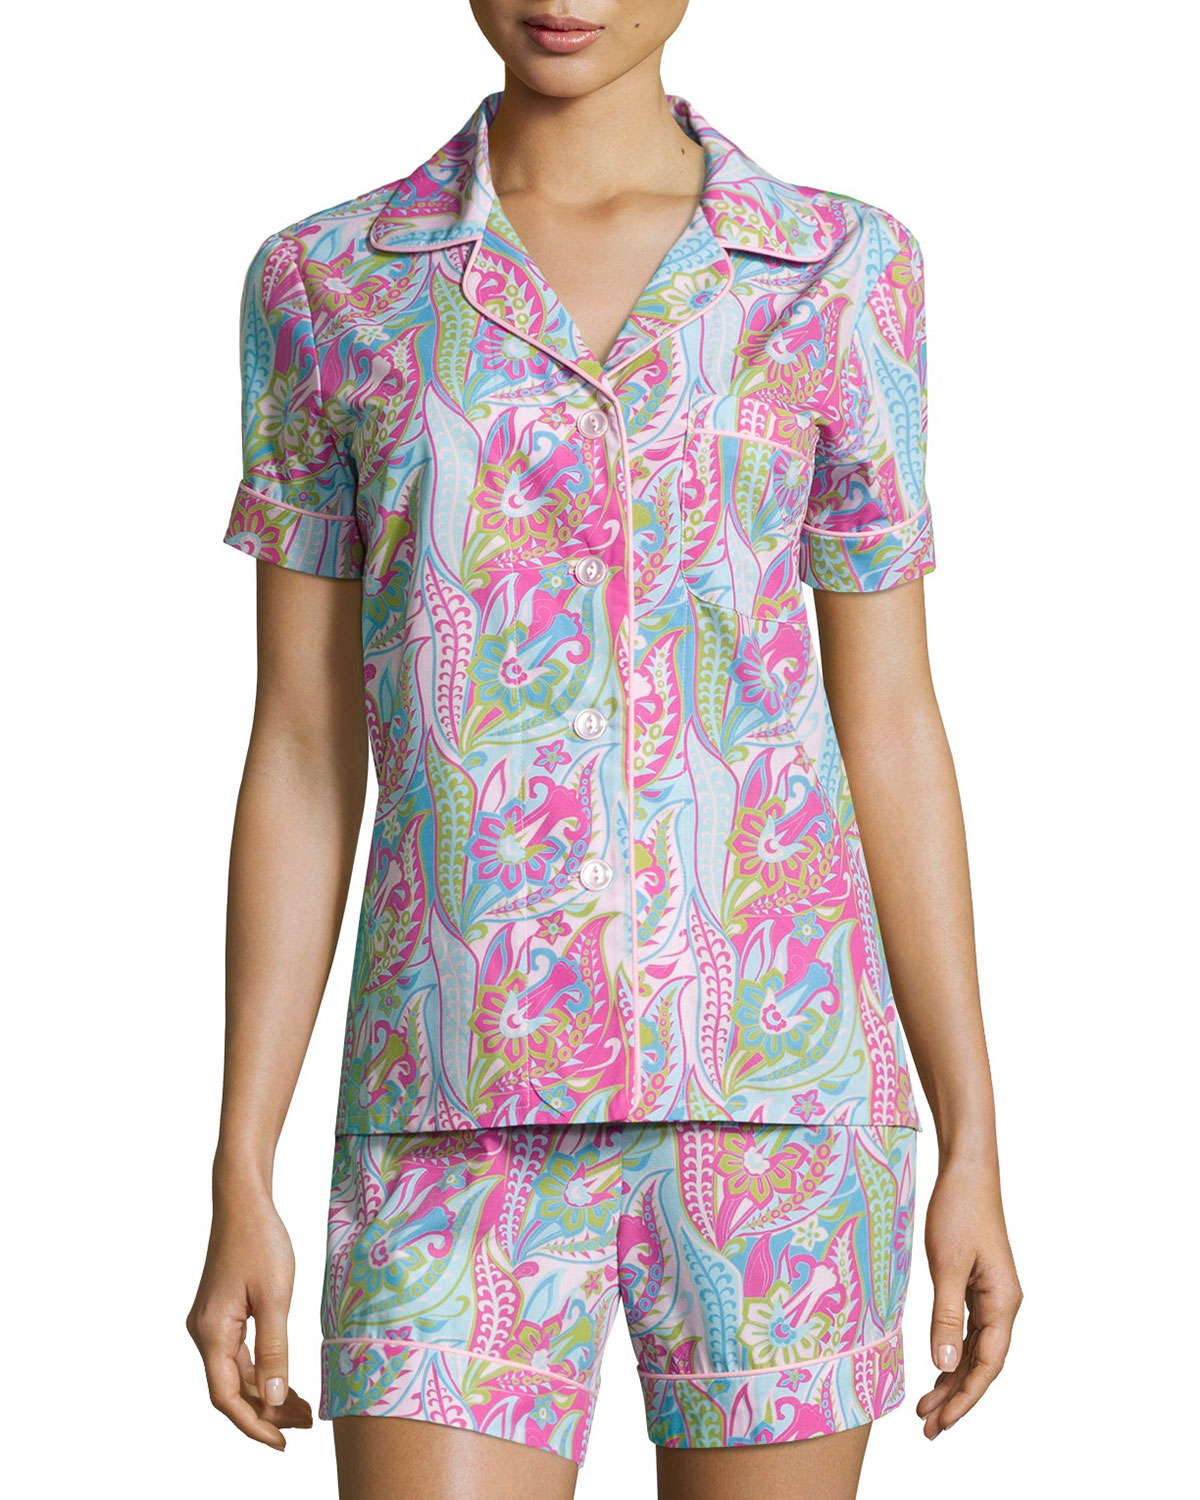 Sergeant Pepper Shorty Pajama Set, Pink/Turquoise, Women's, Size: 1X (16W-18W) - Bedhead